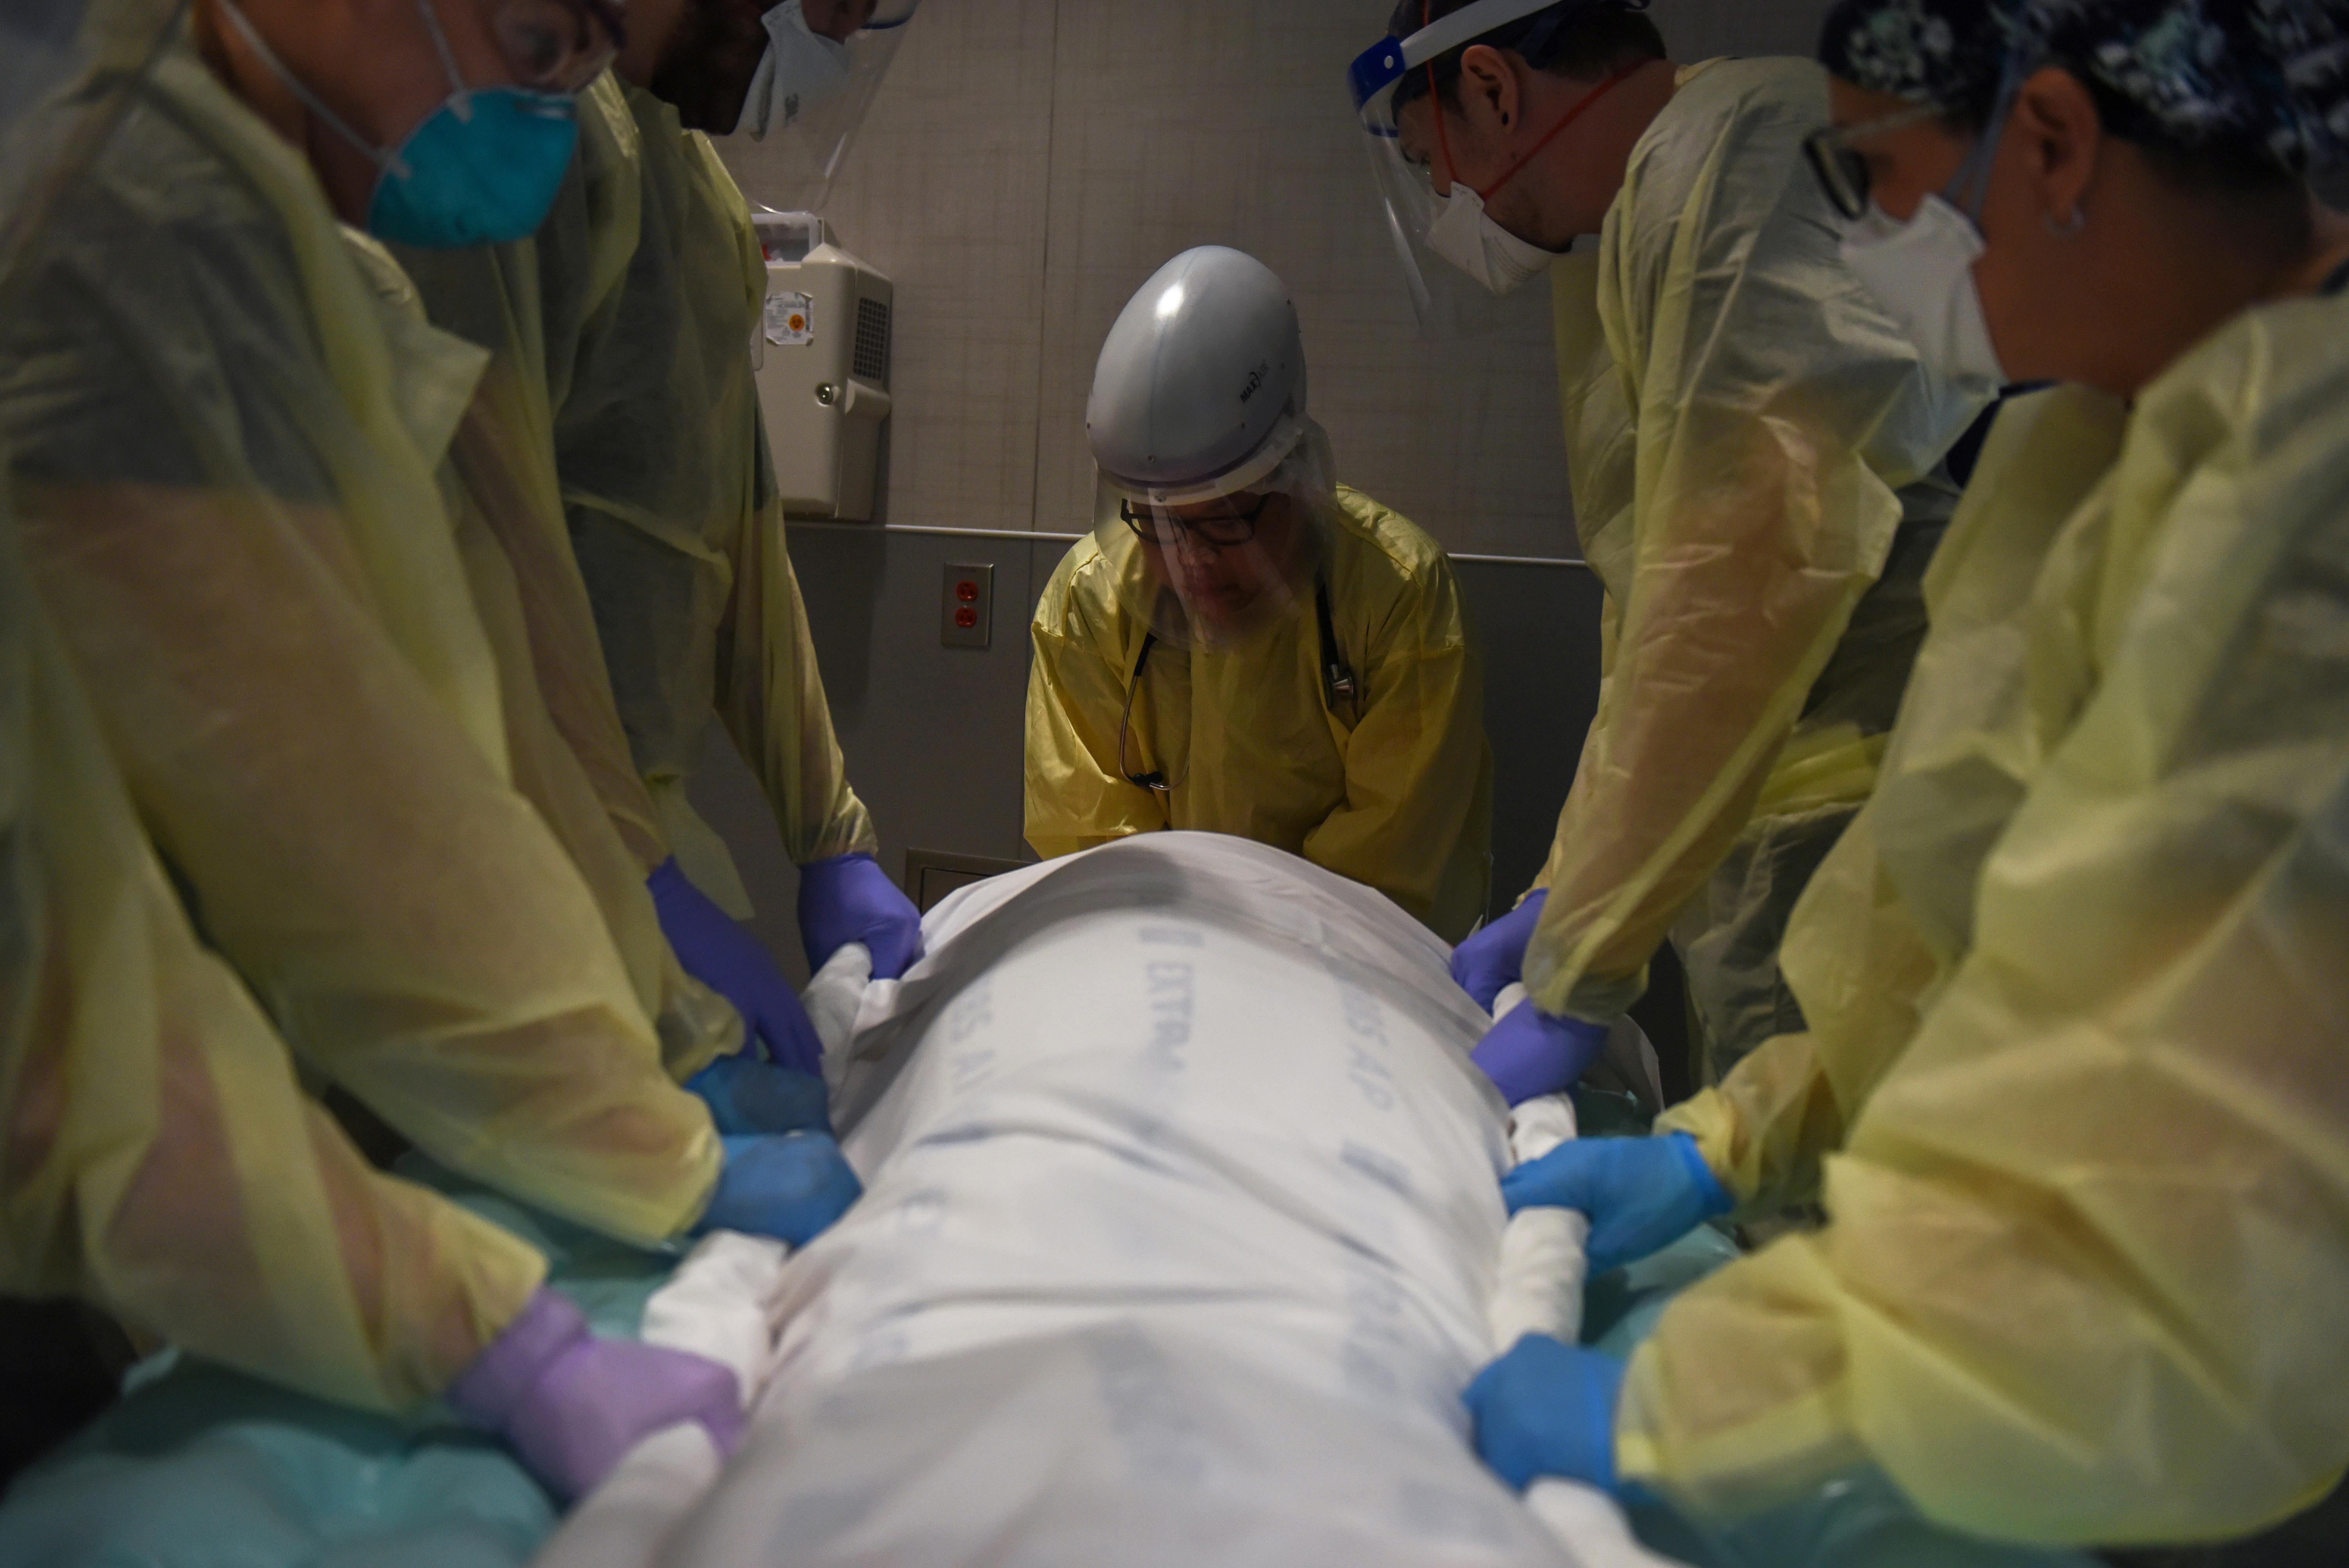 Healthcare personnel prepare to rotate a patient who is on a ventilator inside a room for patients with the coronavirus disease (COVID-19) at a hospital in Hutchinson, Kansas, U.S., November 20, 2020.